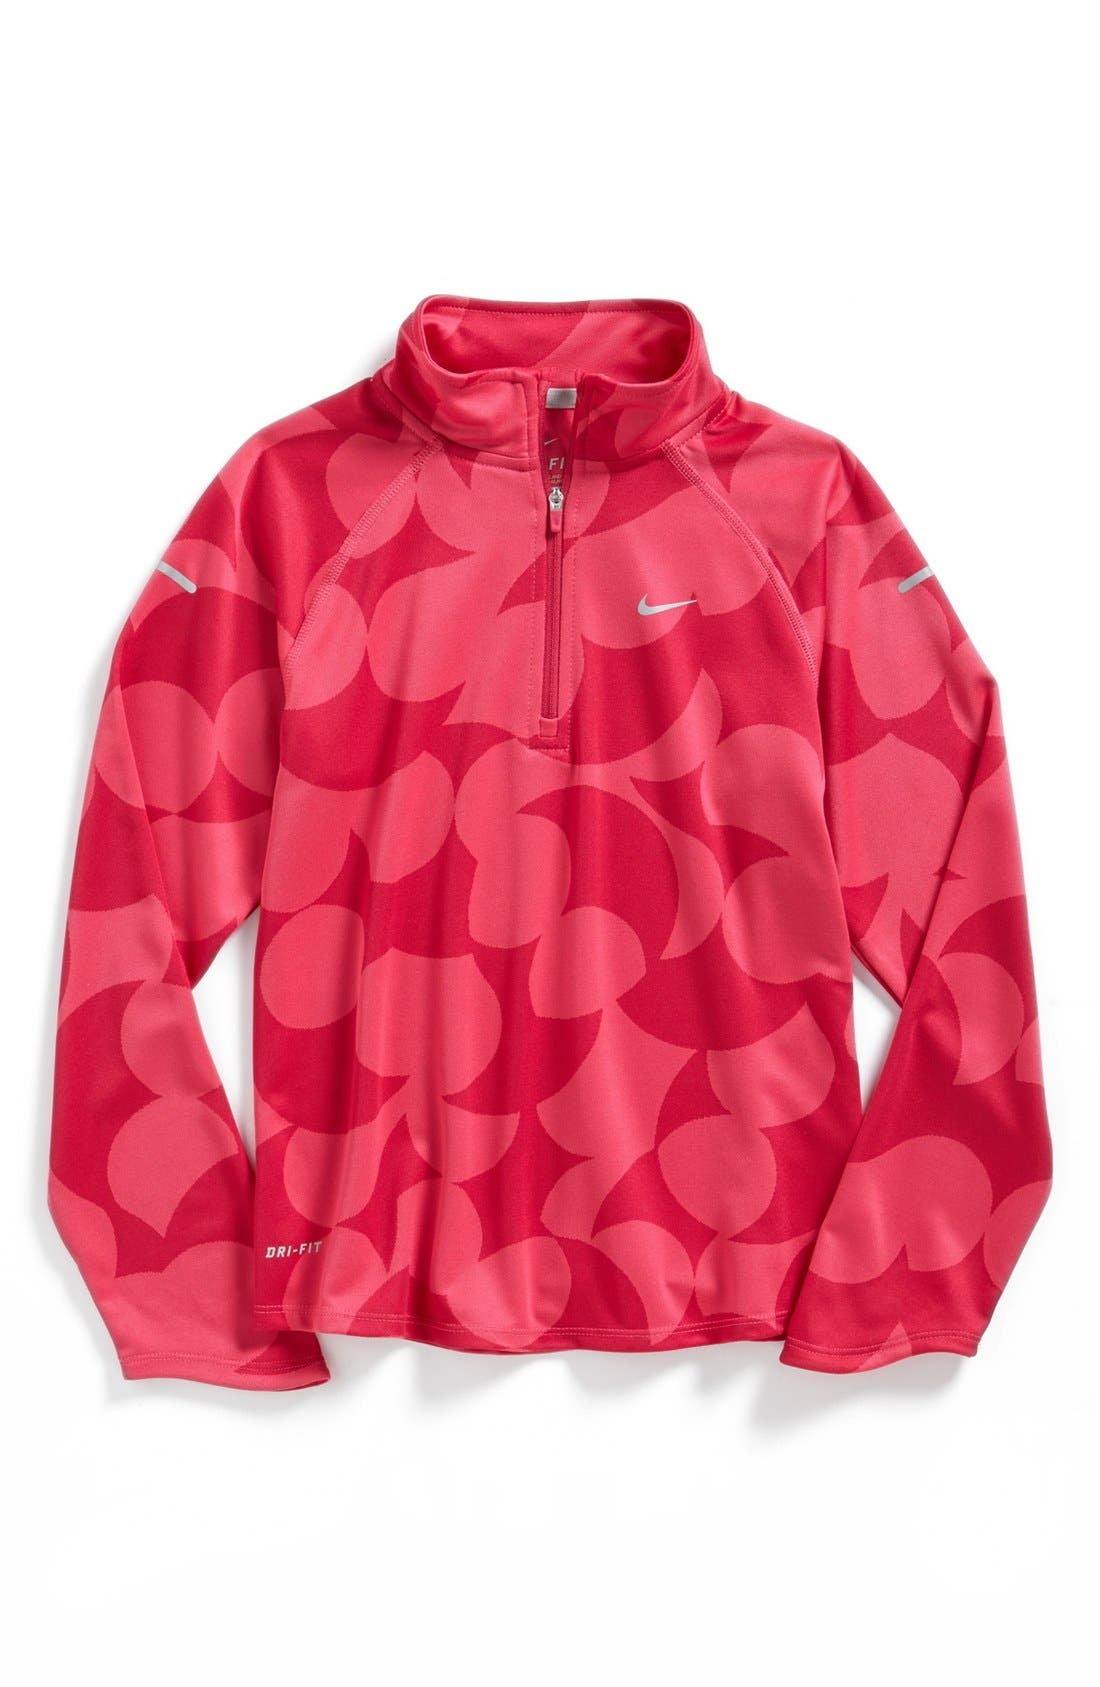 Main Image - Nike 'Element' Dri-FIT Half Zip Running Top (Big Girls)